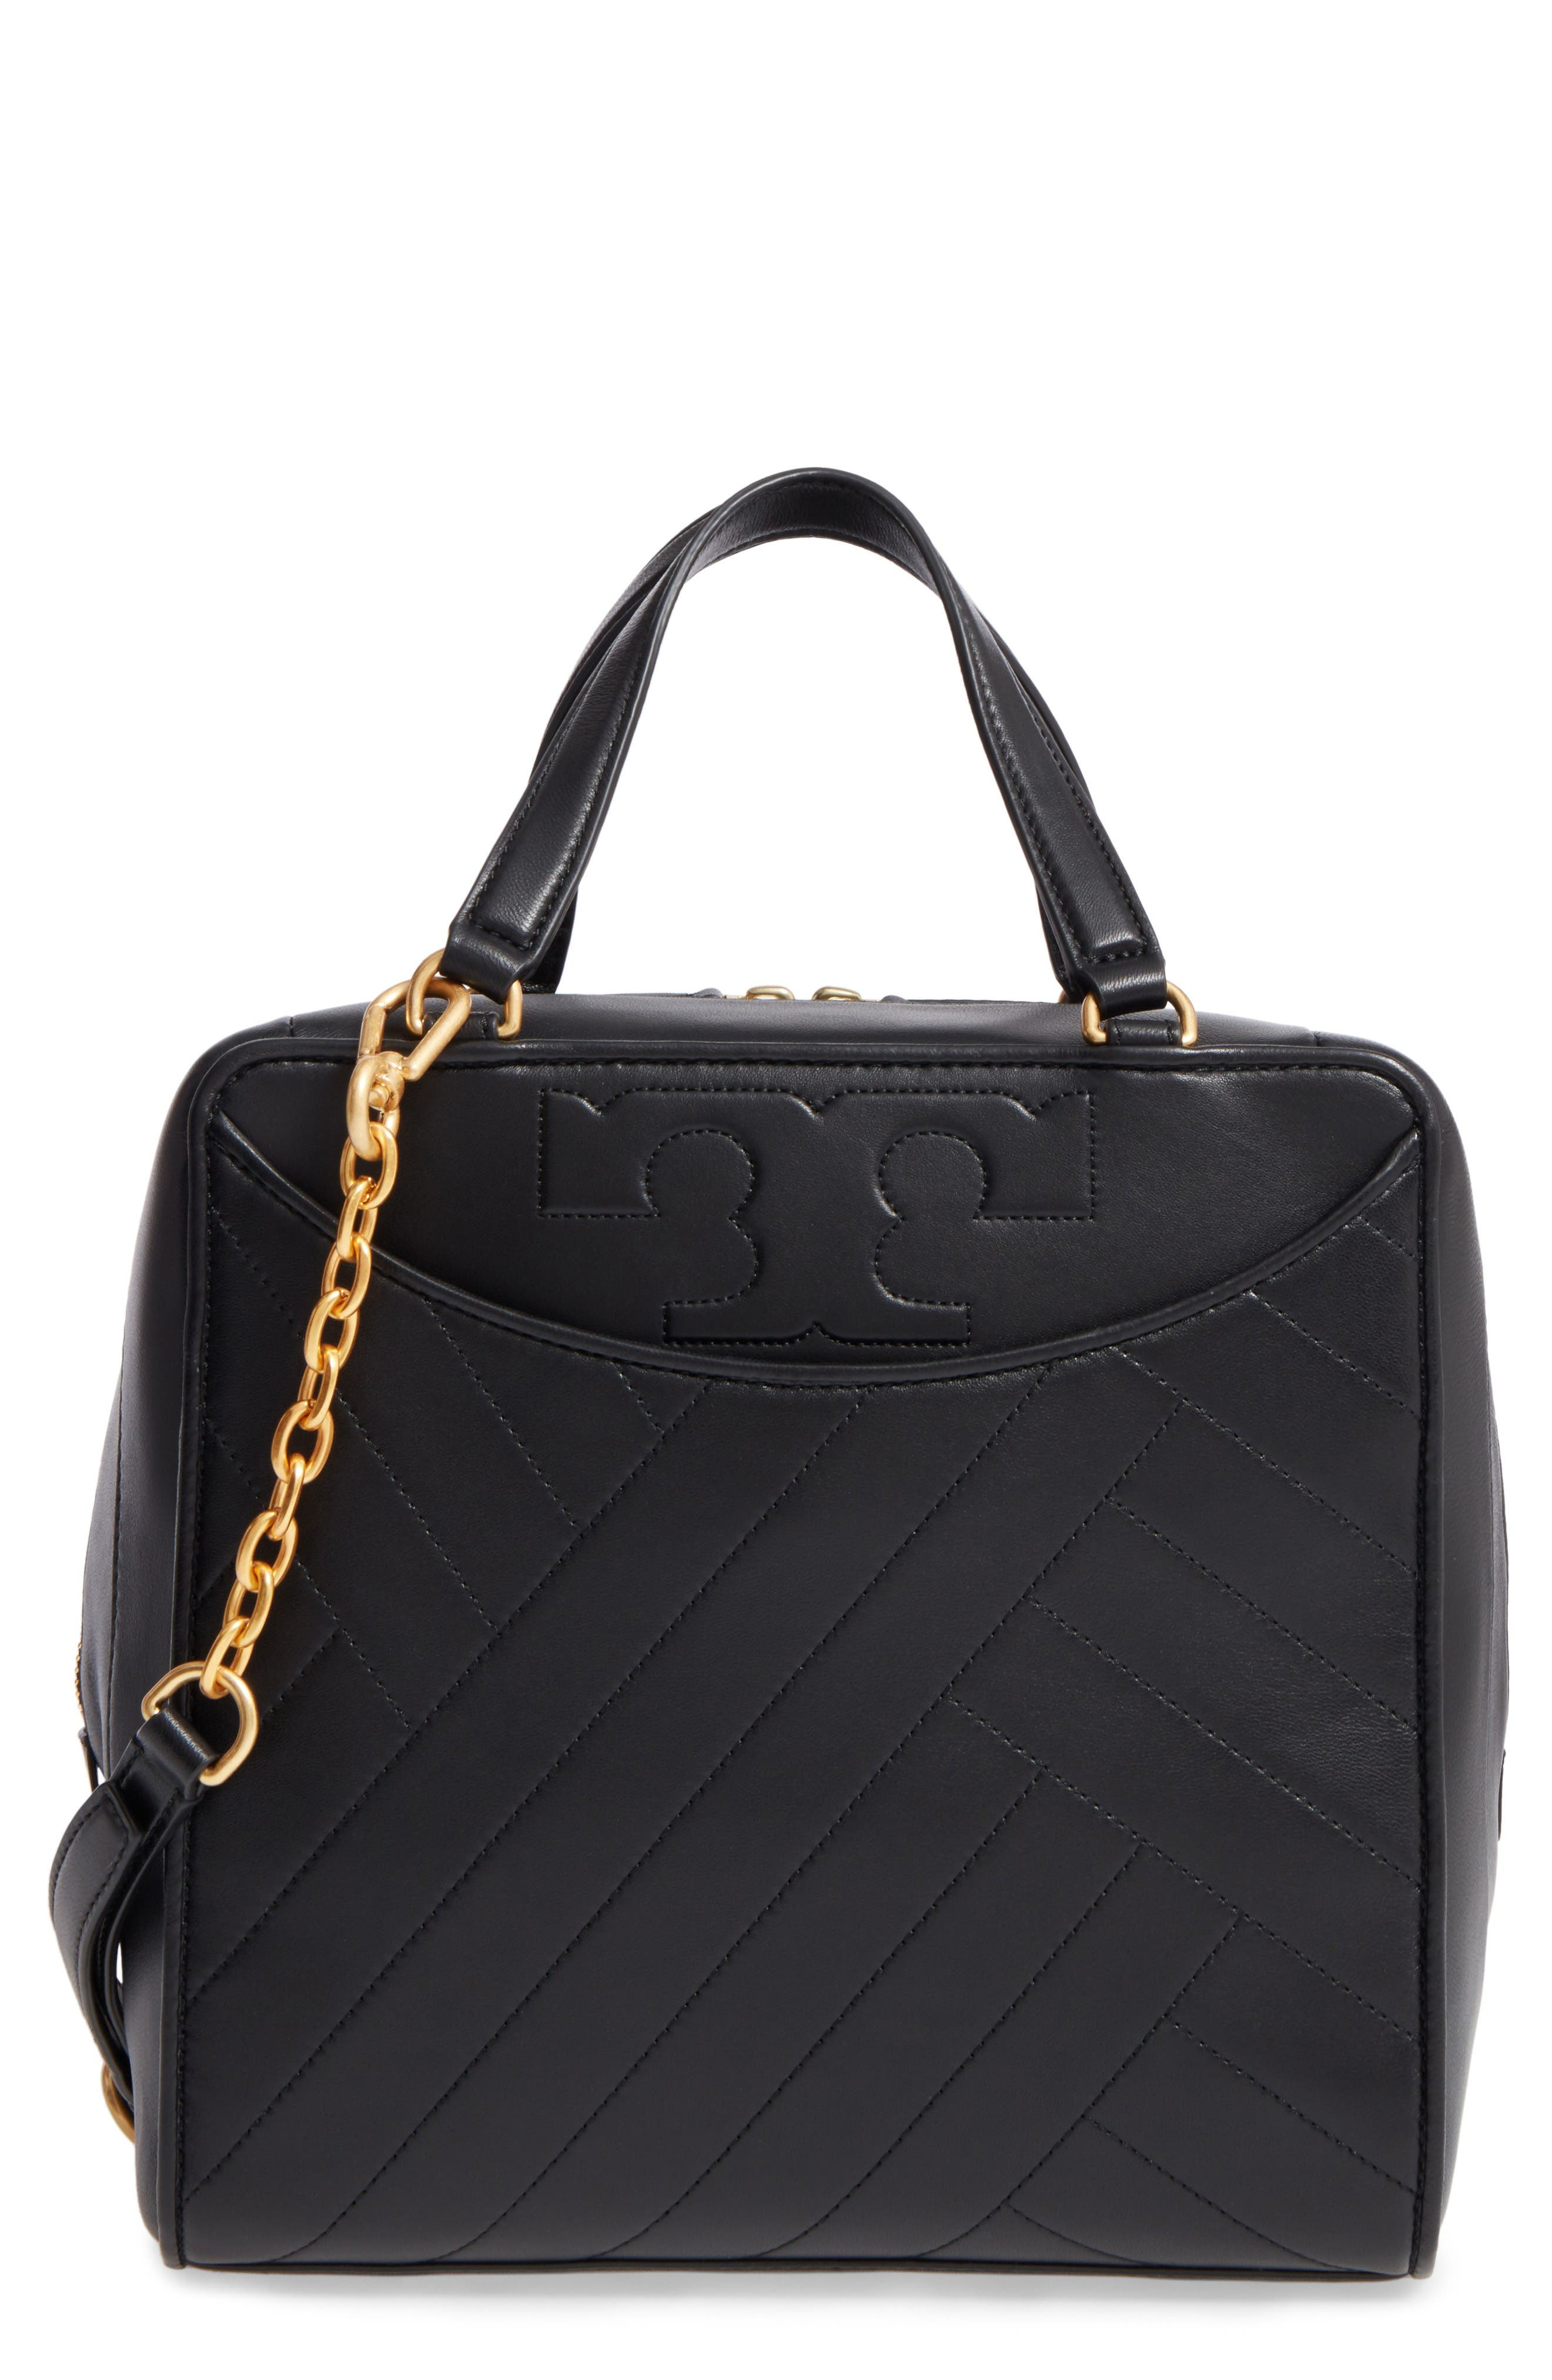 Main Image - Tory Burch Chevron Quilted Leather Satchel